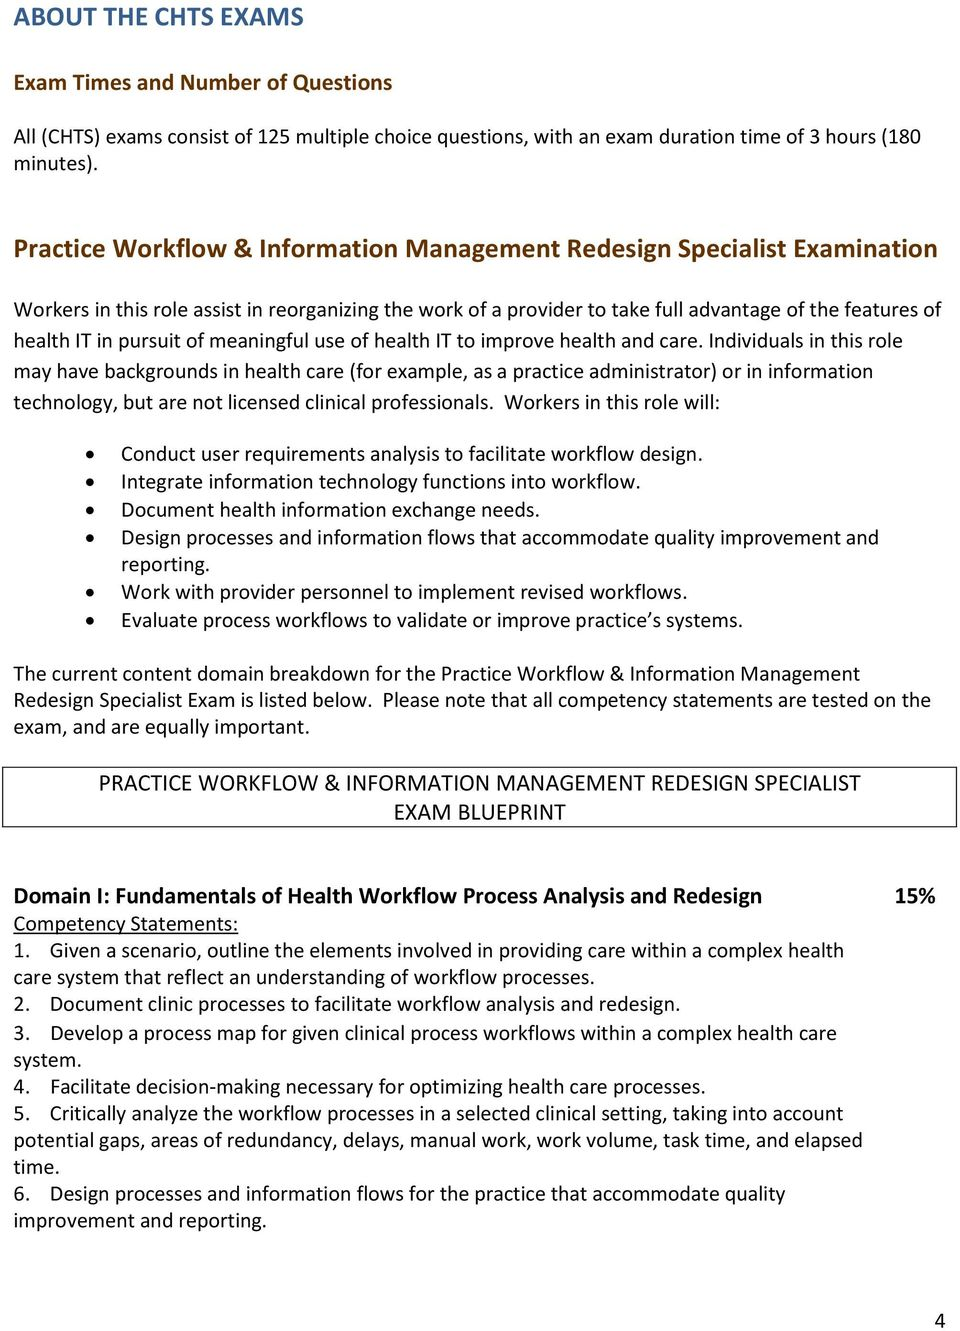 Certified healthcare technology specialist chts examinations pursuit of meaningful use of health it to improve health and care malvernweather Choice Image